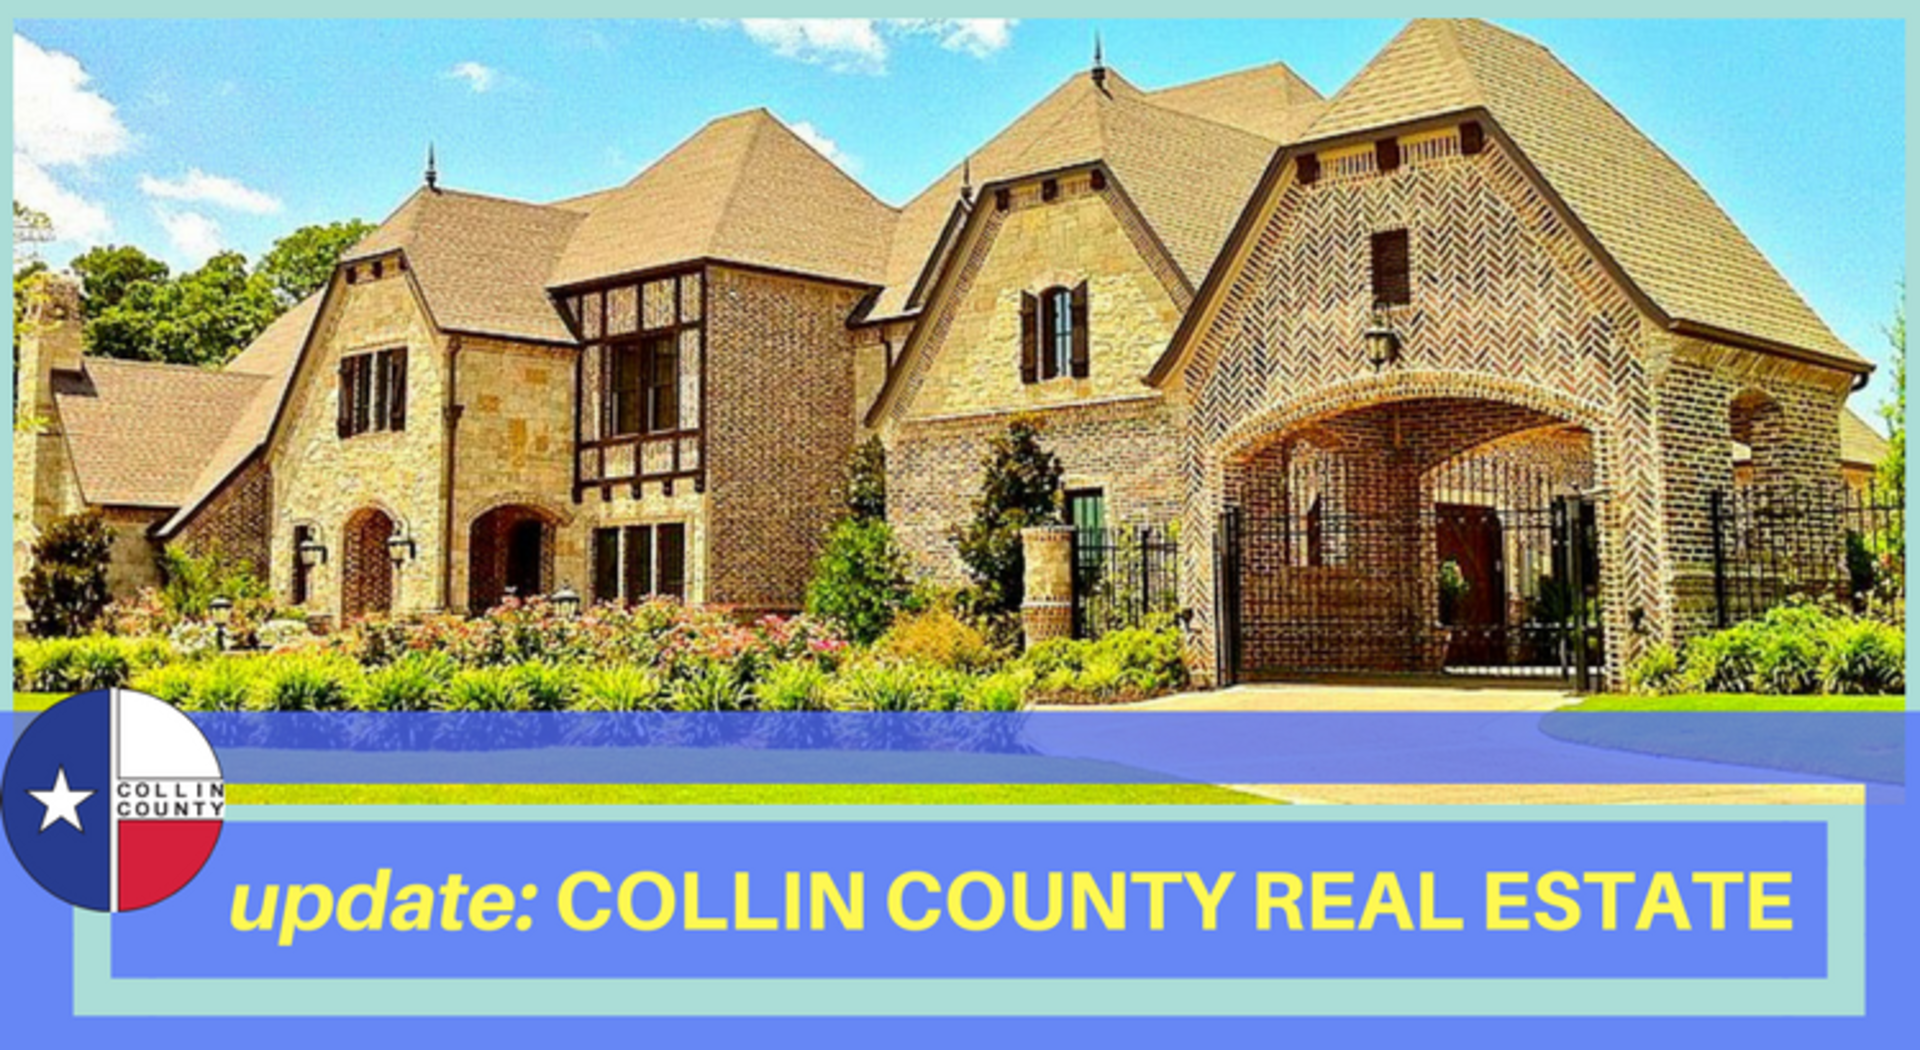 Collin County Real Estate Update – Into Spring Buying Season 2018